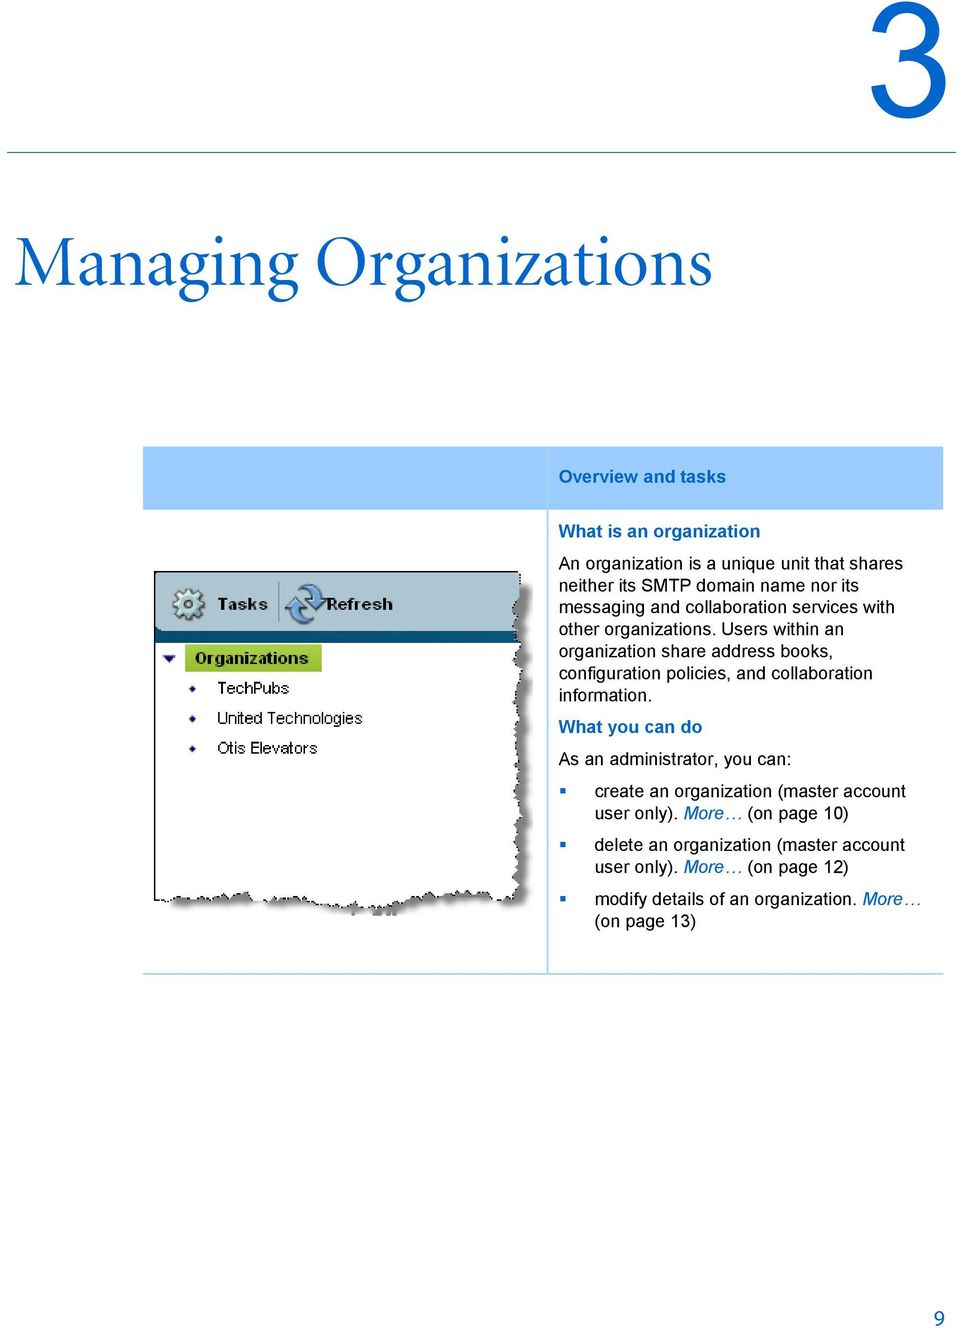 Users within an organization share address books, configuration policies, and collaboration information.